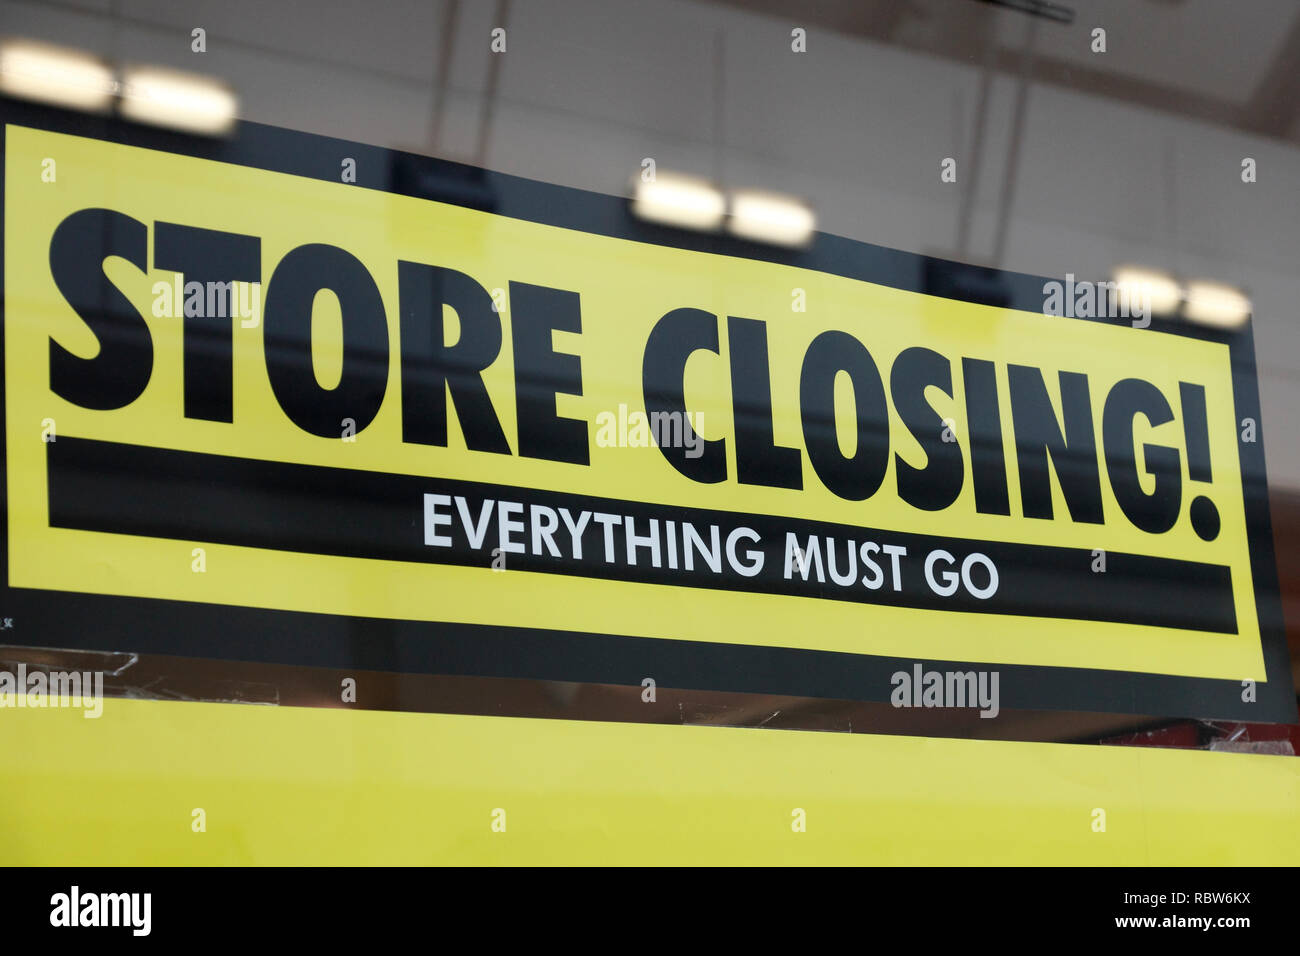 store closing sign - Stock Image